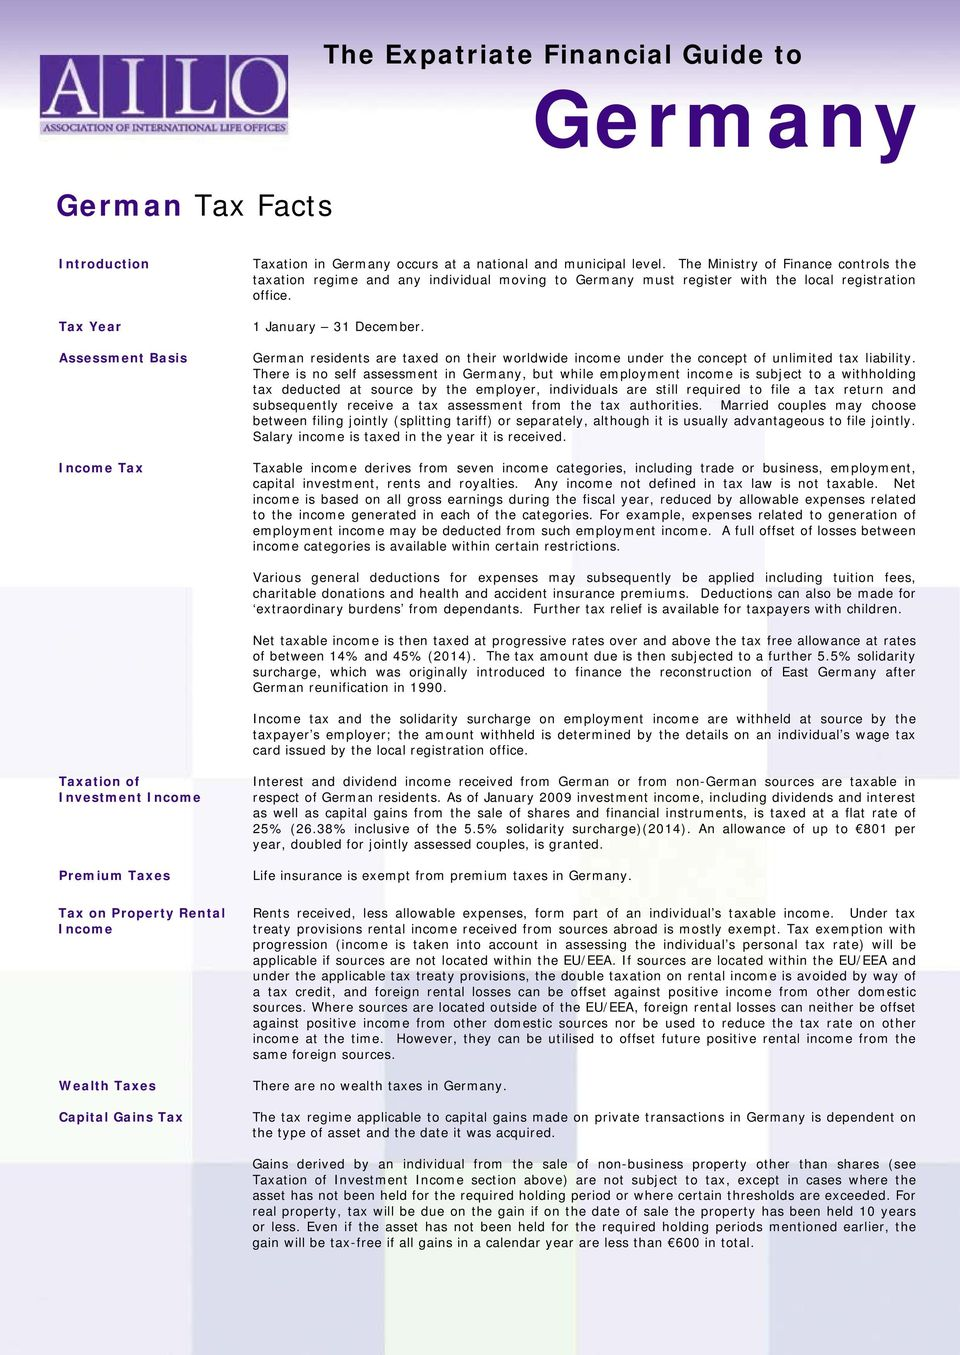 German residents are taxed on their worldwide income under the concept of unlimited tax liability.